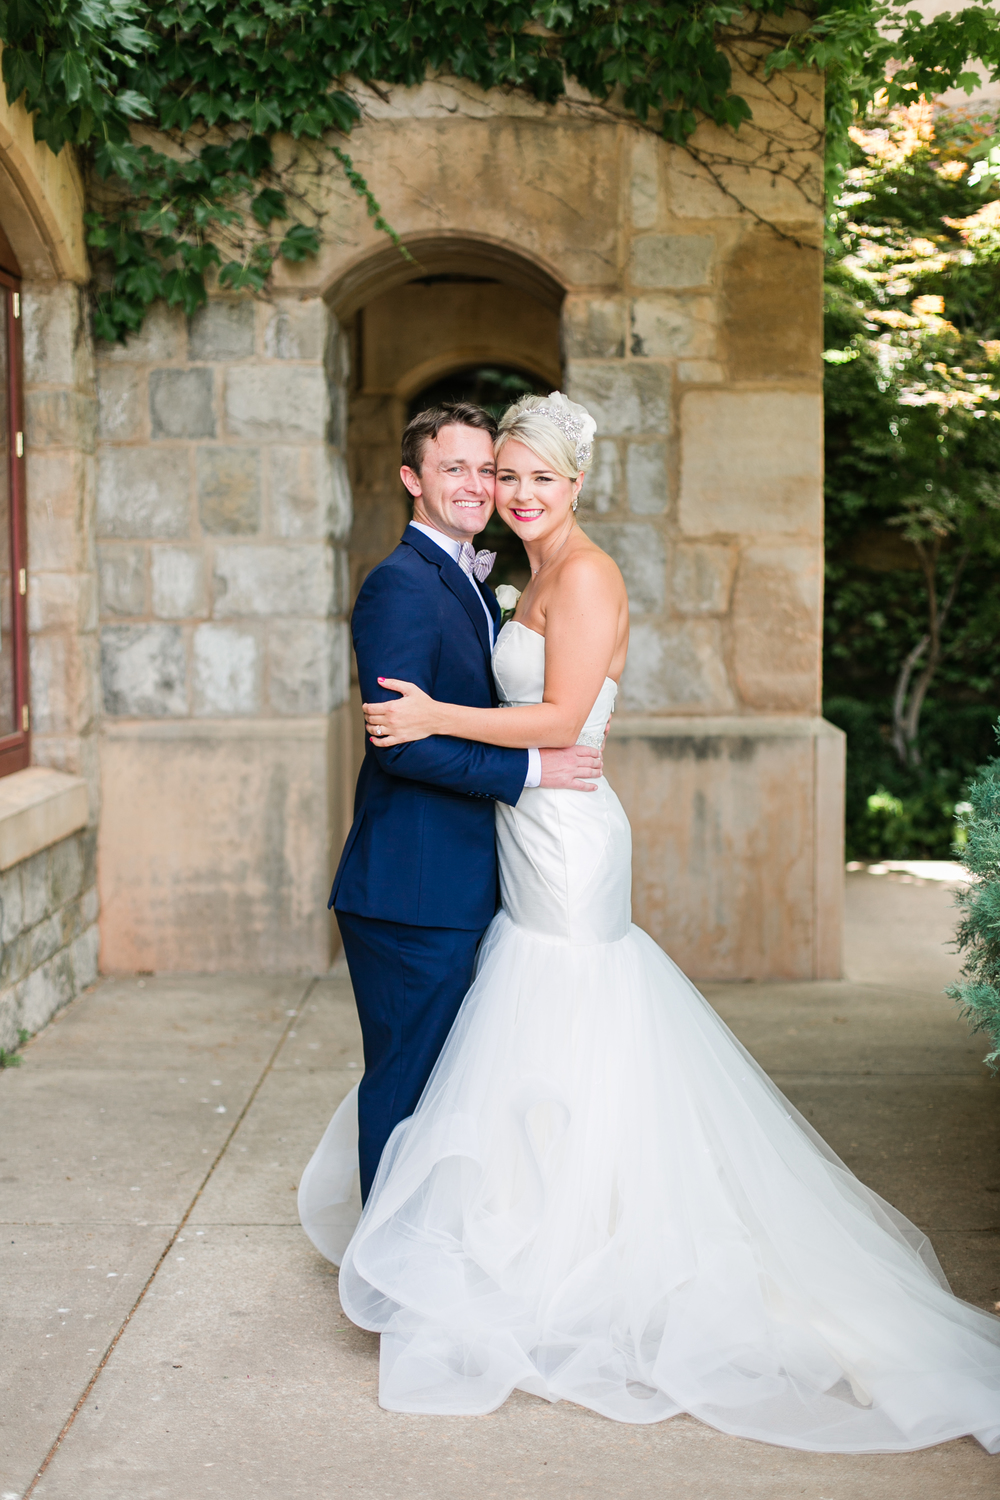 Bliss OKC | Aubrey Marie Photography | Wedding Dress | Wedding Day | Hayley Paige